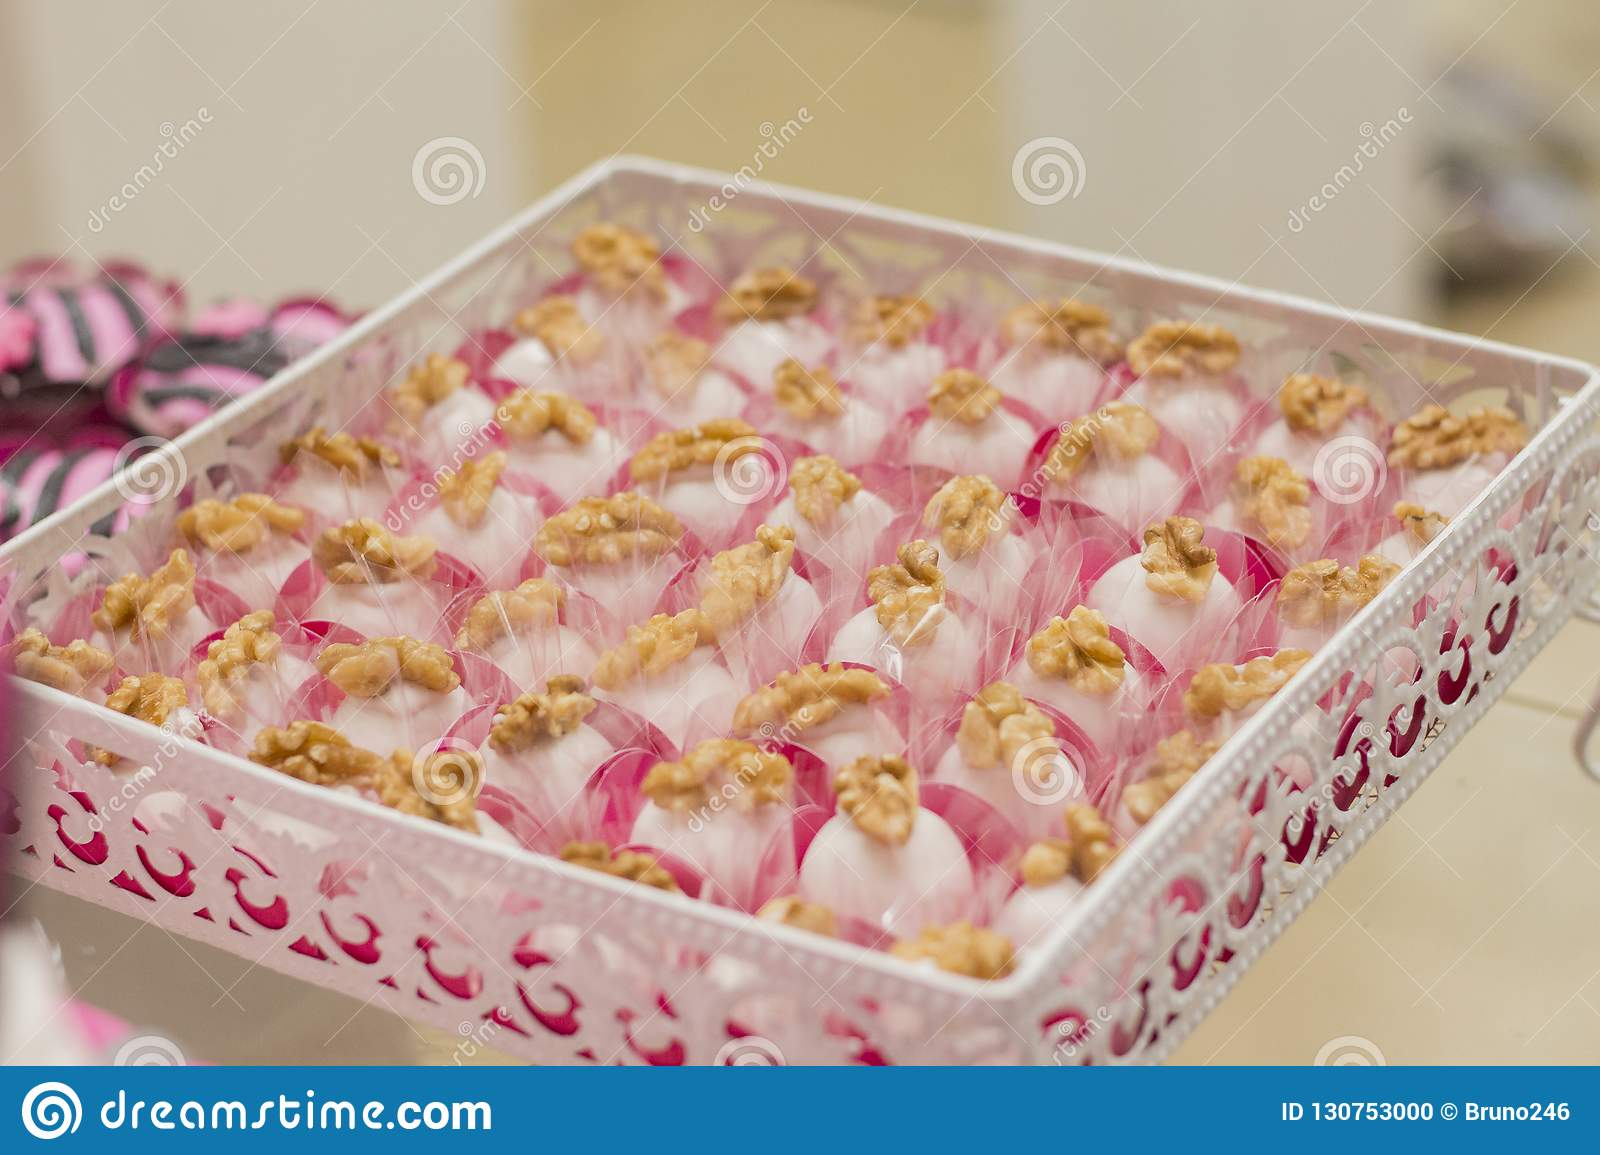 Wondrous Candy And Birthday Cake Stock Photo Image Of Marriage 130753000 Personalised Birthday Cards Paralily Jamesorg